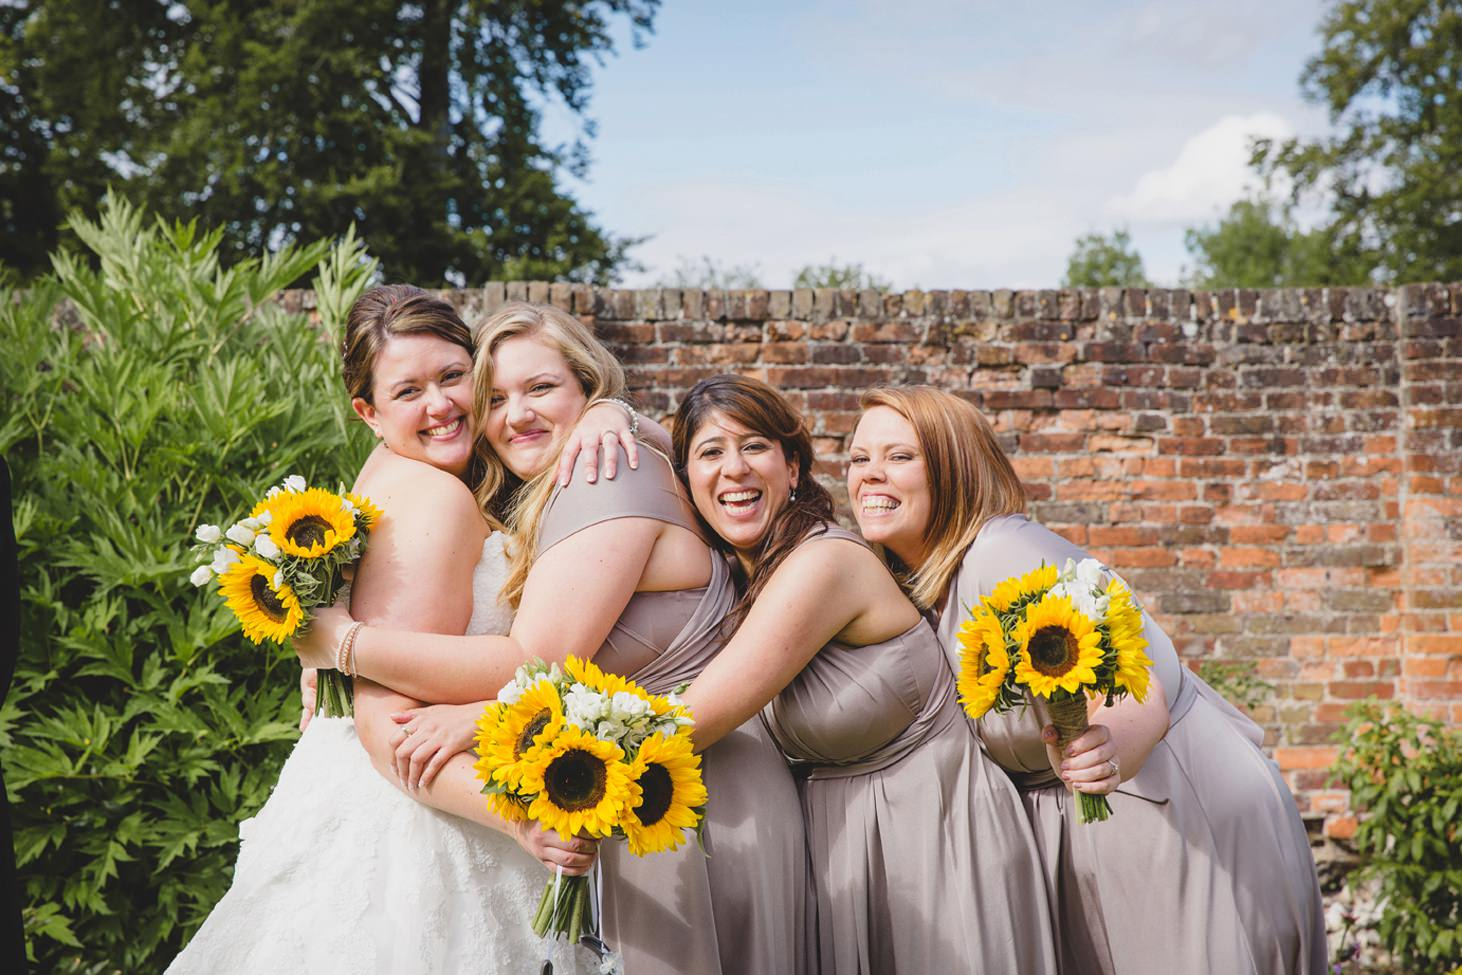 Wycombe Abbey wedding photography bride and bridesmaids